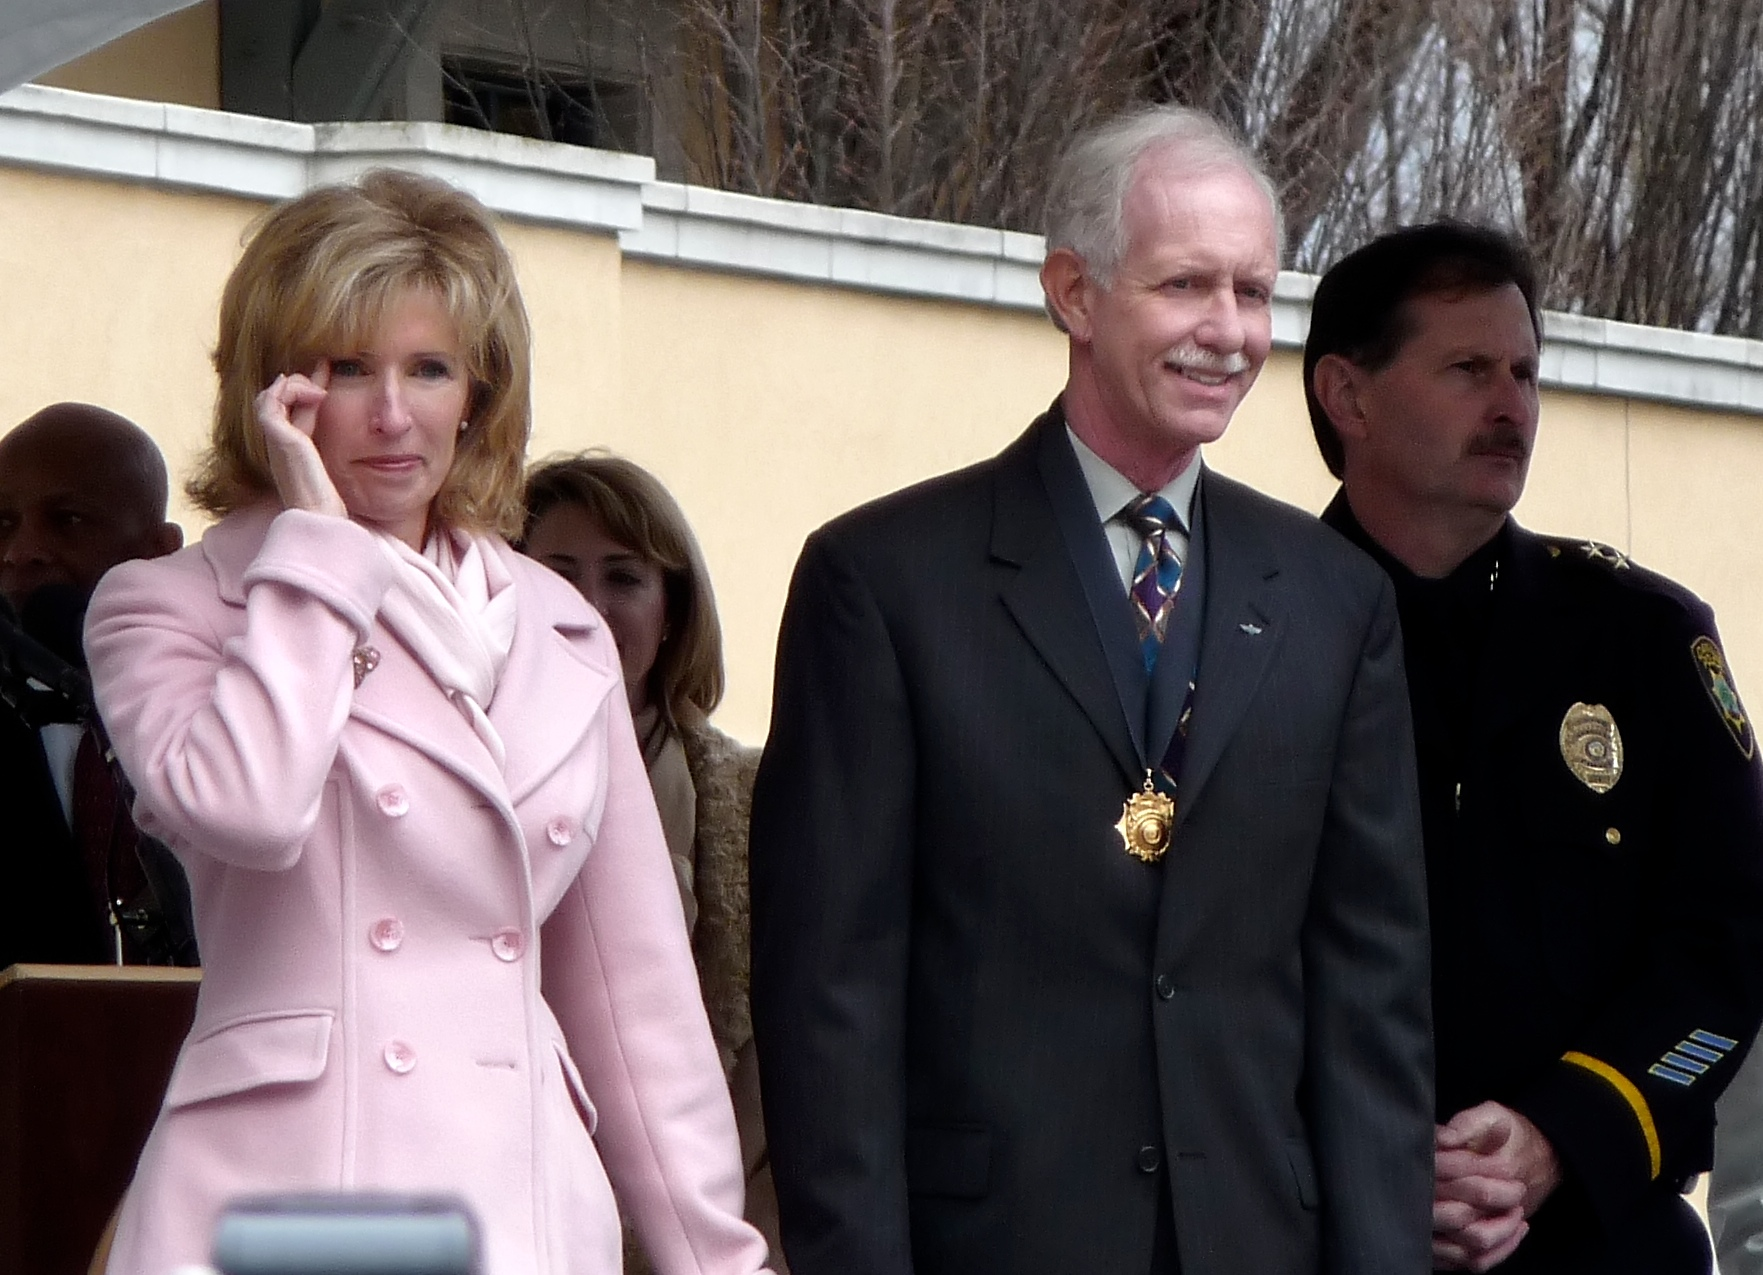 Captain Chesley Sullenberger and Wife Lorrie by Ingrid Taylar